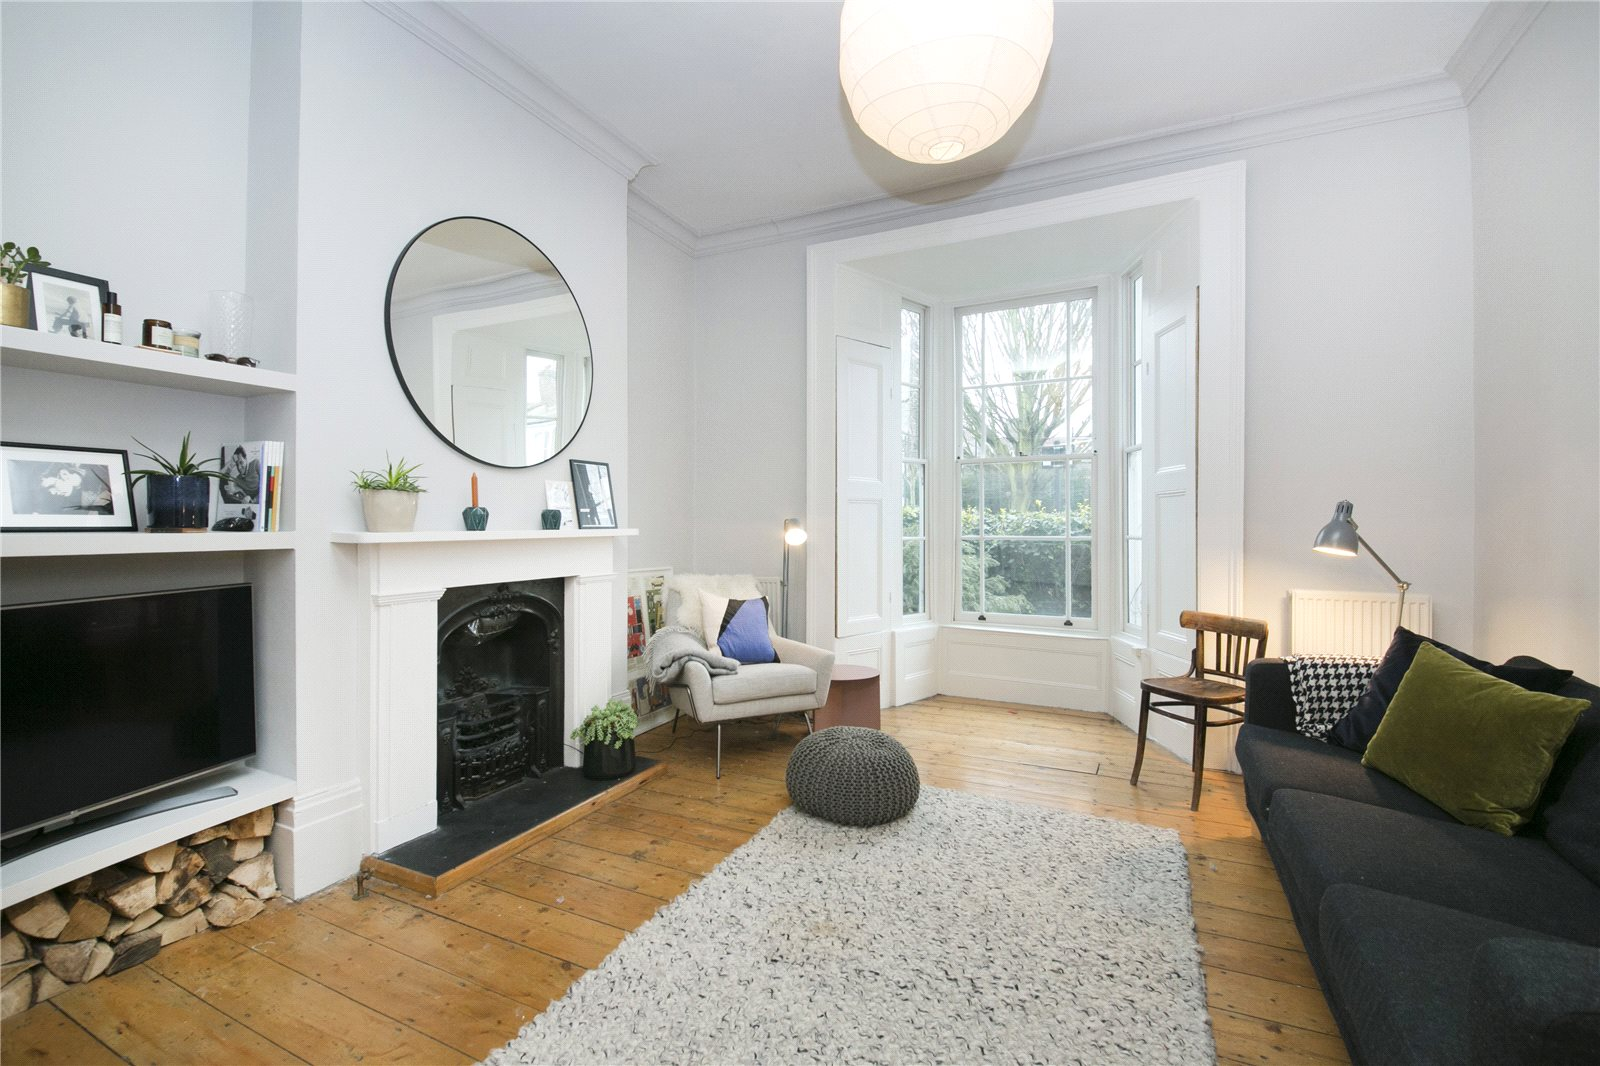 3 Bedrooms House for sale in Gayhurst Road, Hackney, E8